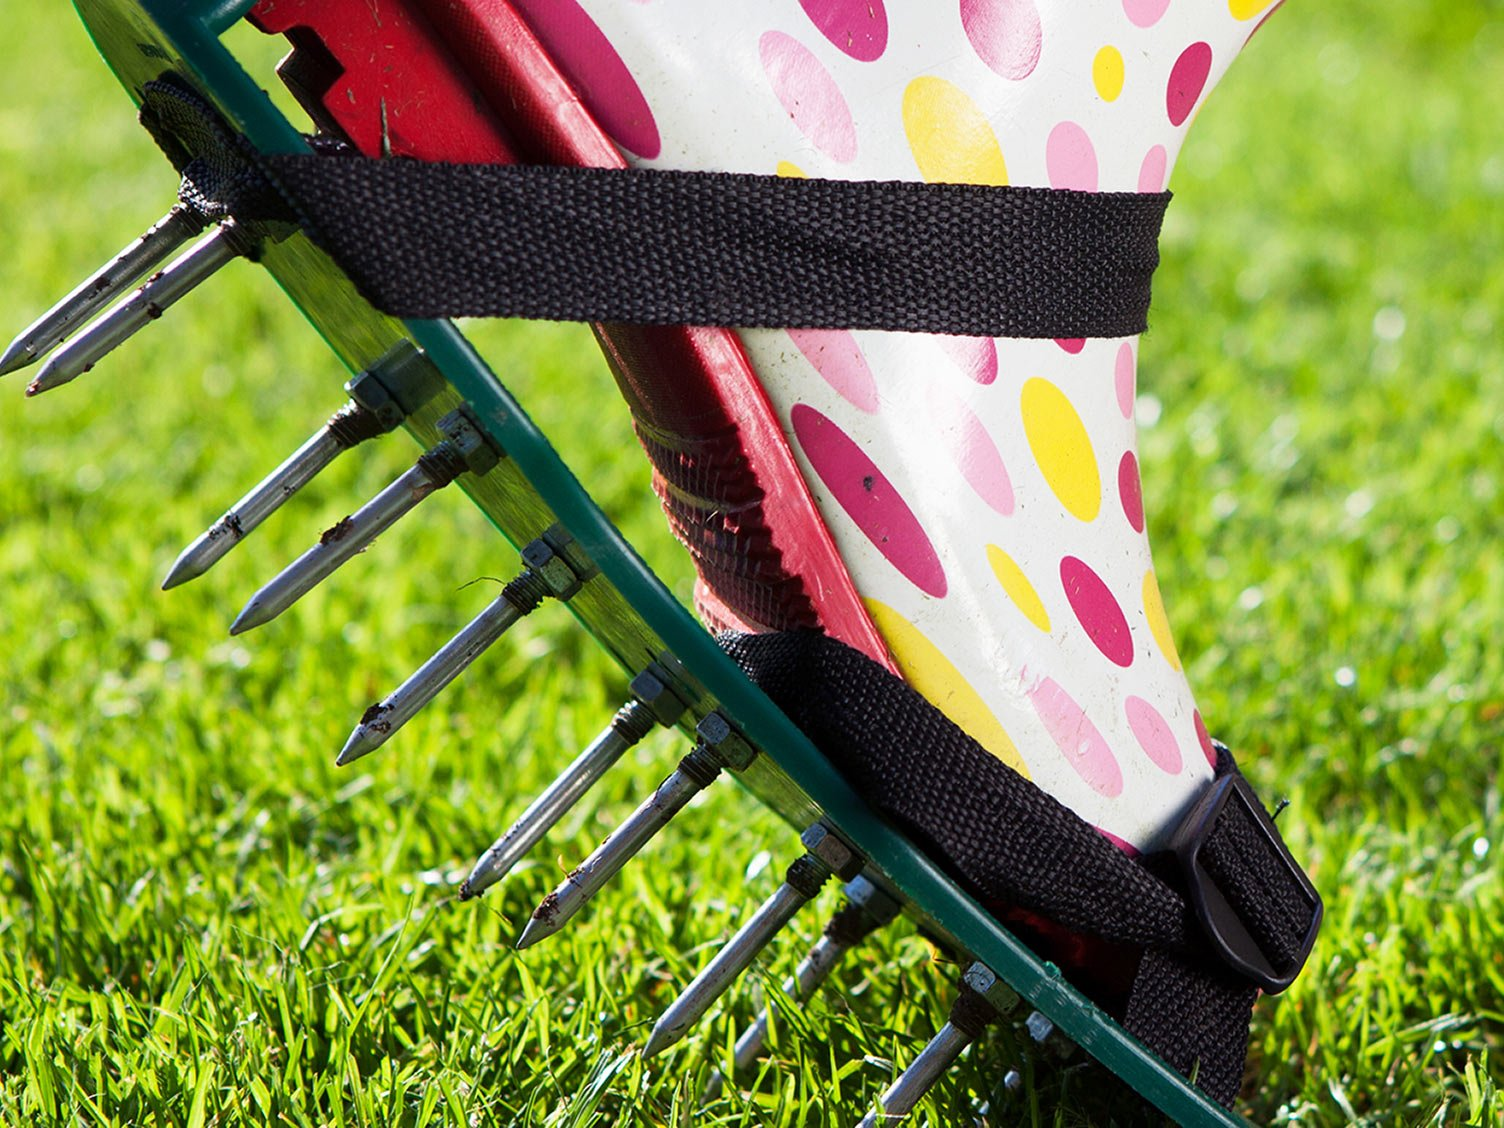 Aerating a Lawn with Aerator Spikes